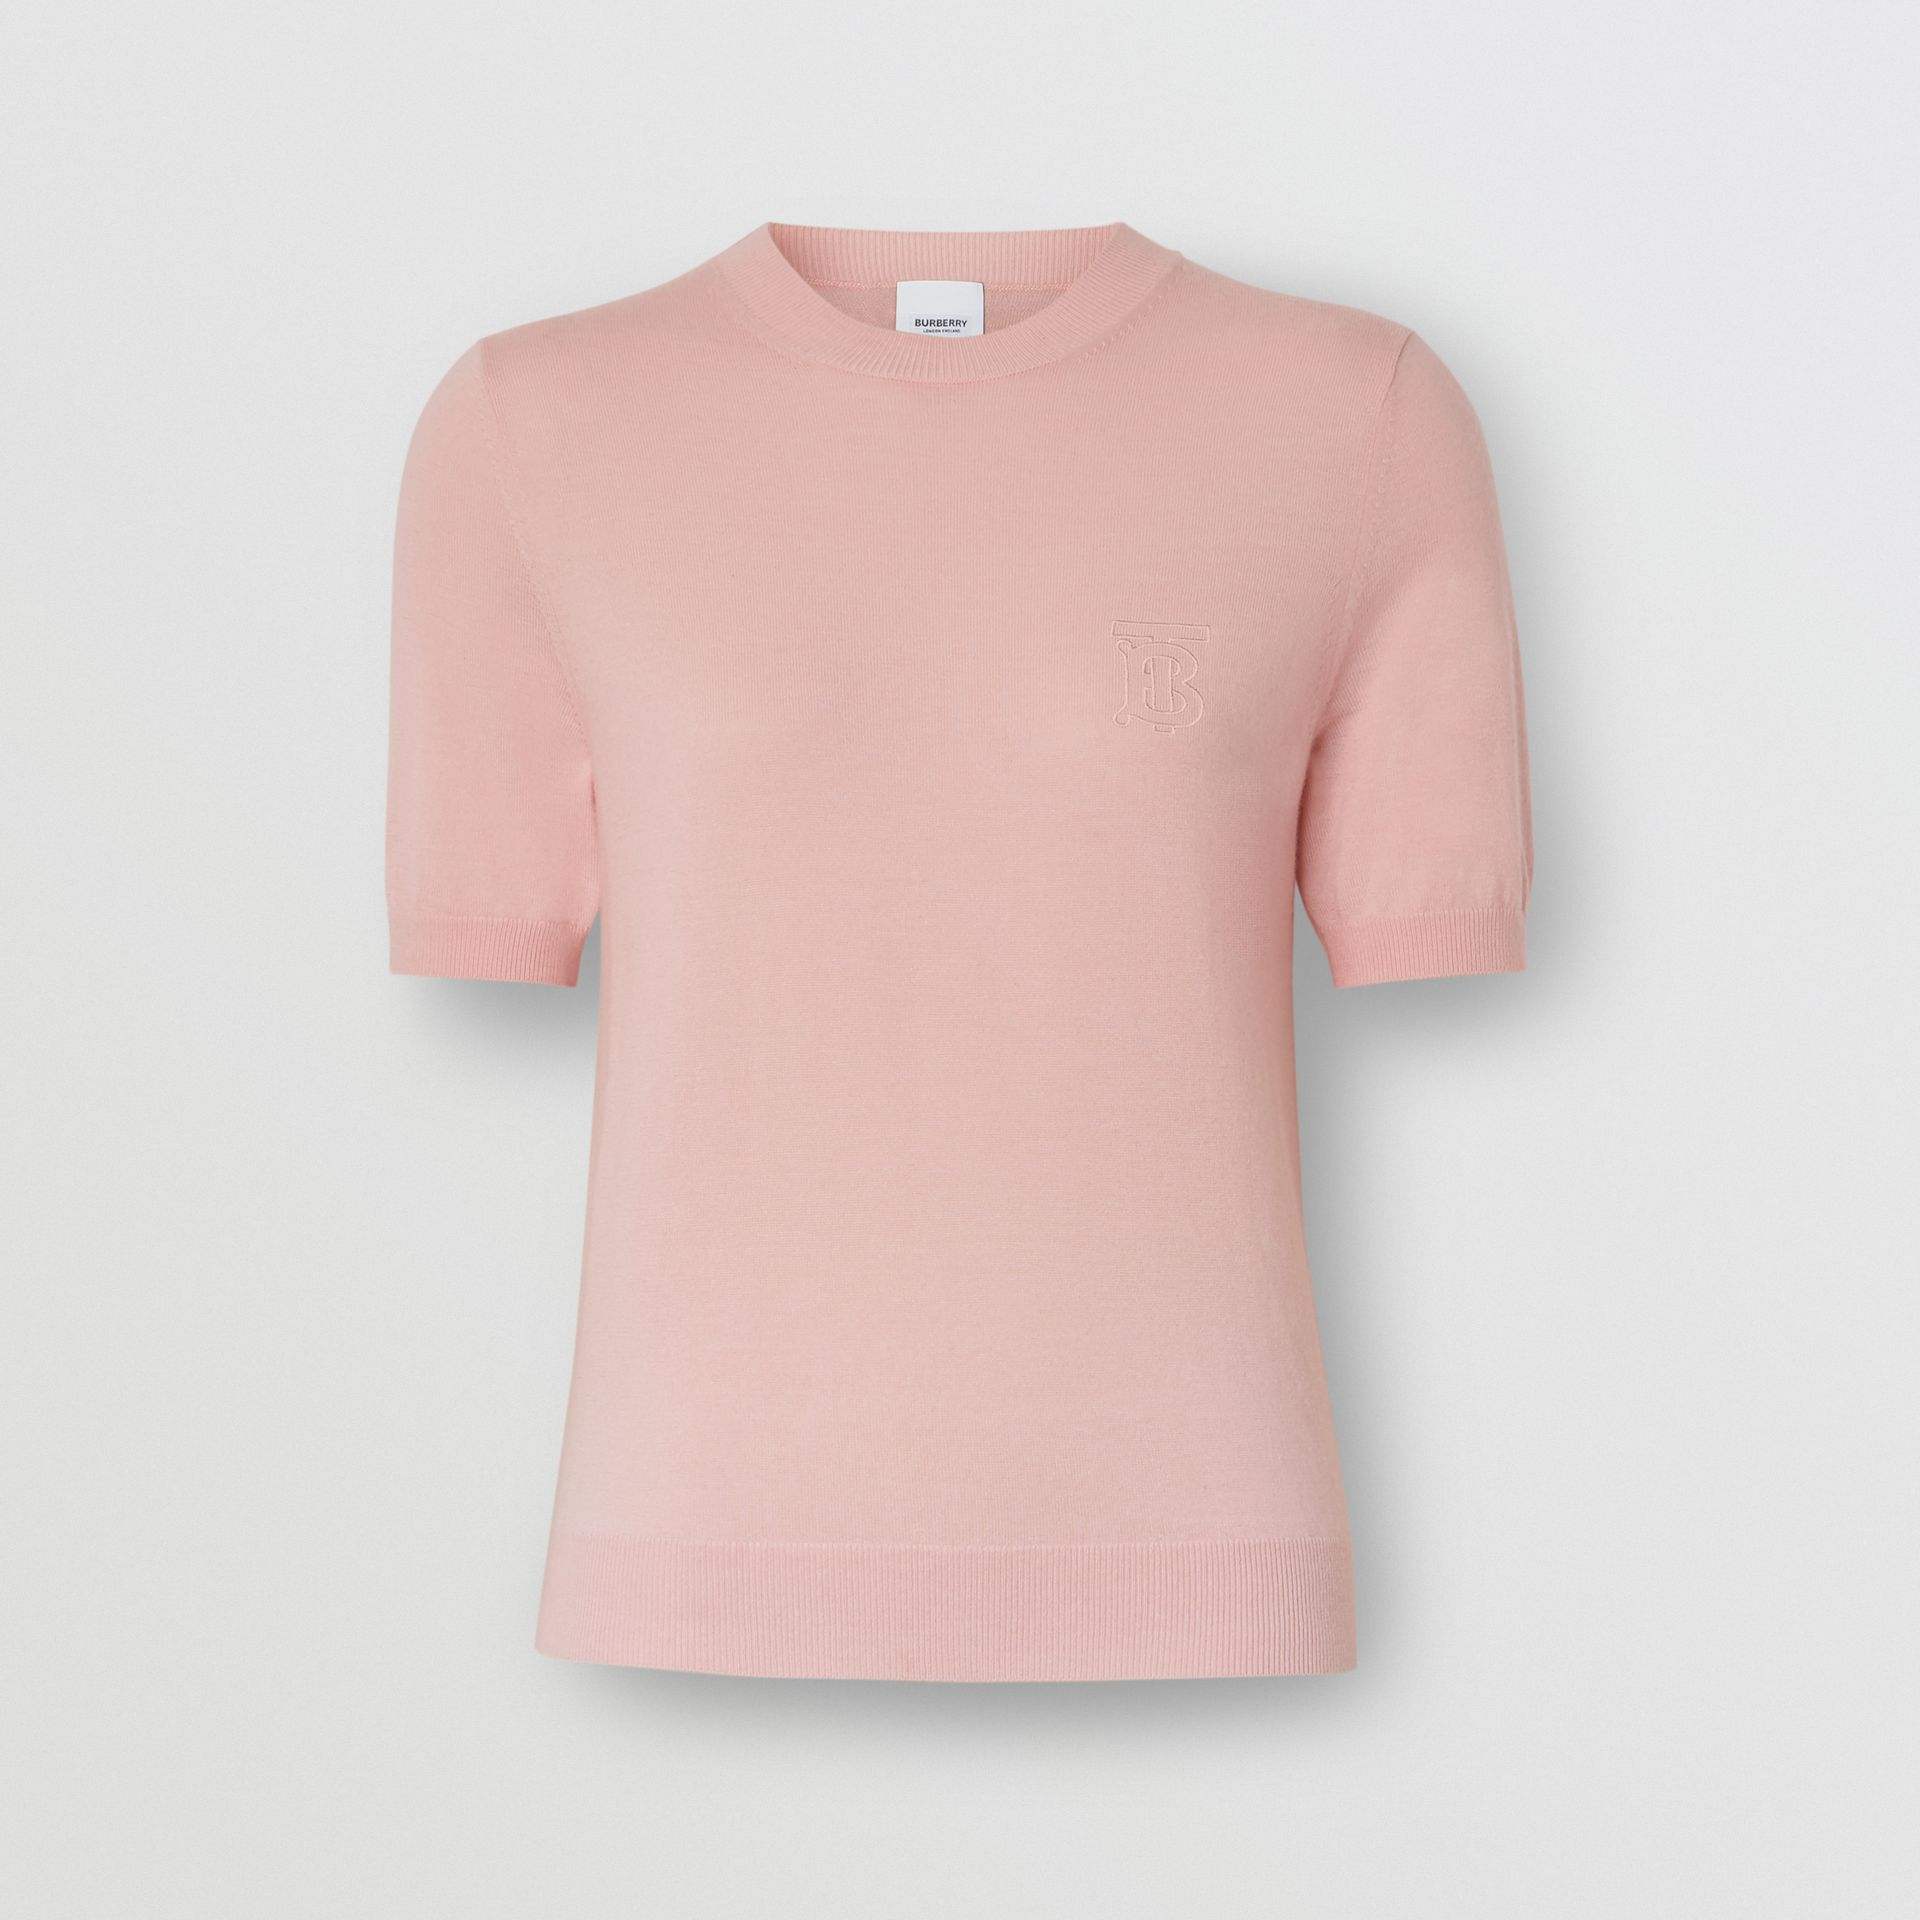 Monogram Motif Cashmere Top in Pink - Women | Burberry United States - gallery image 3